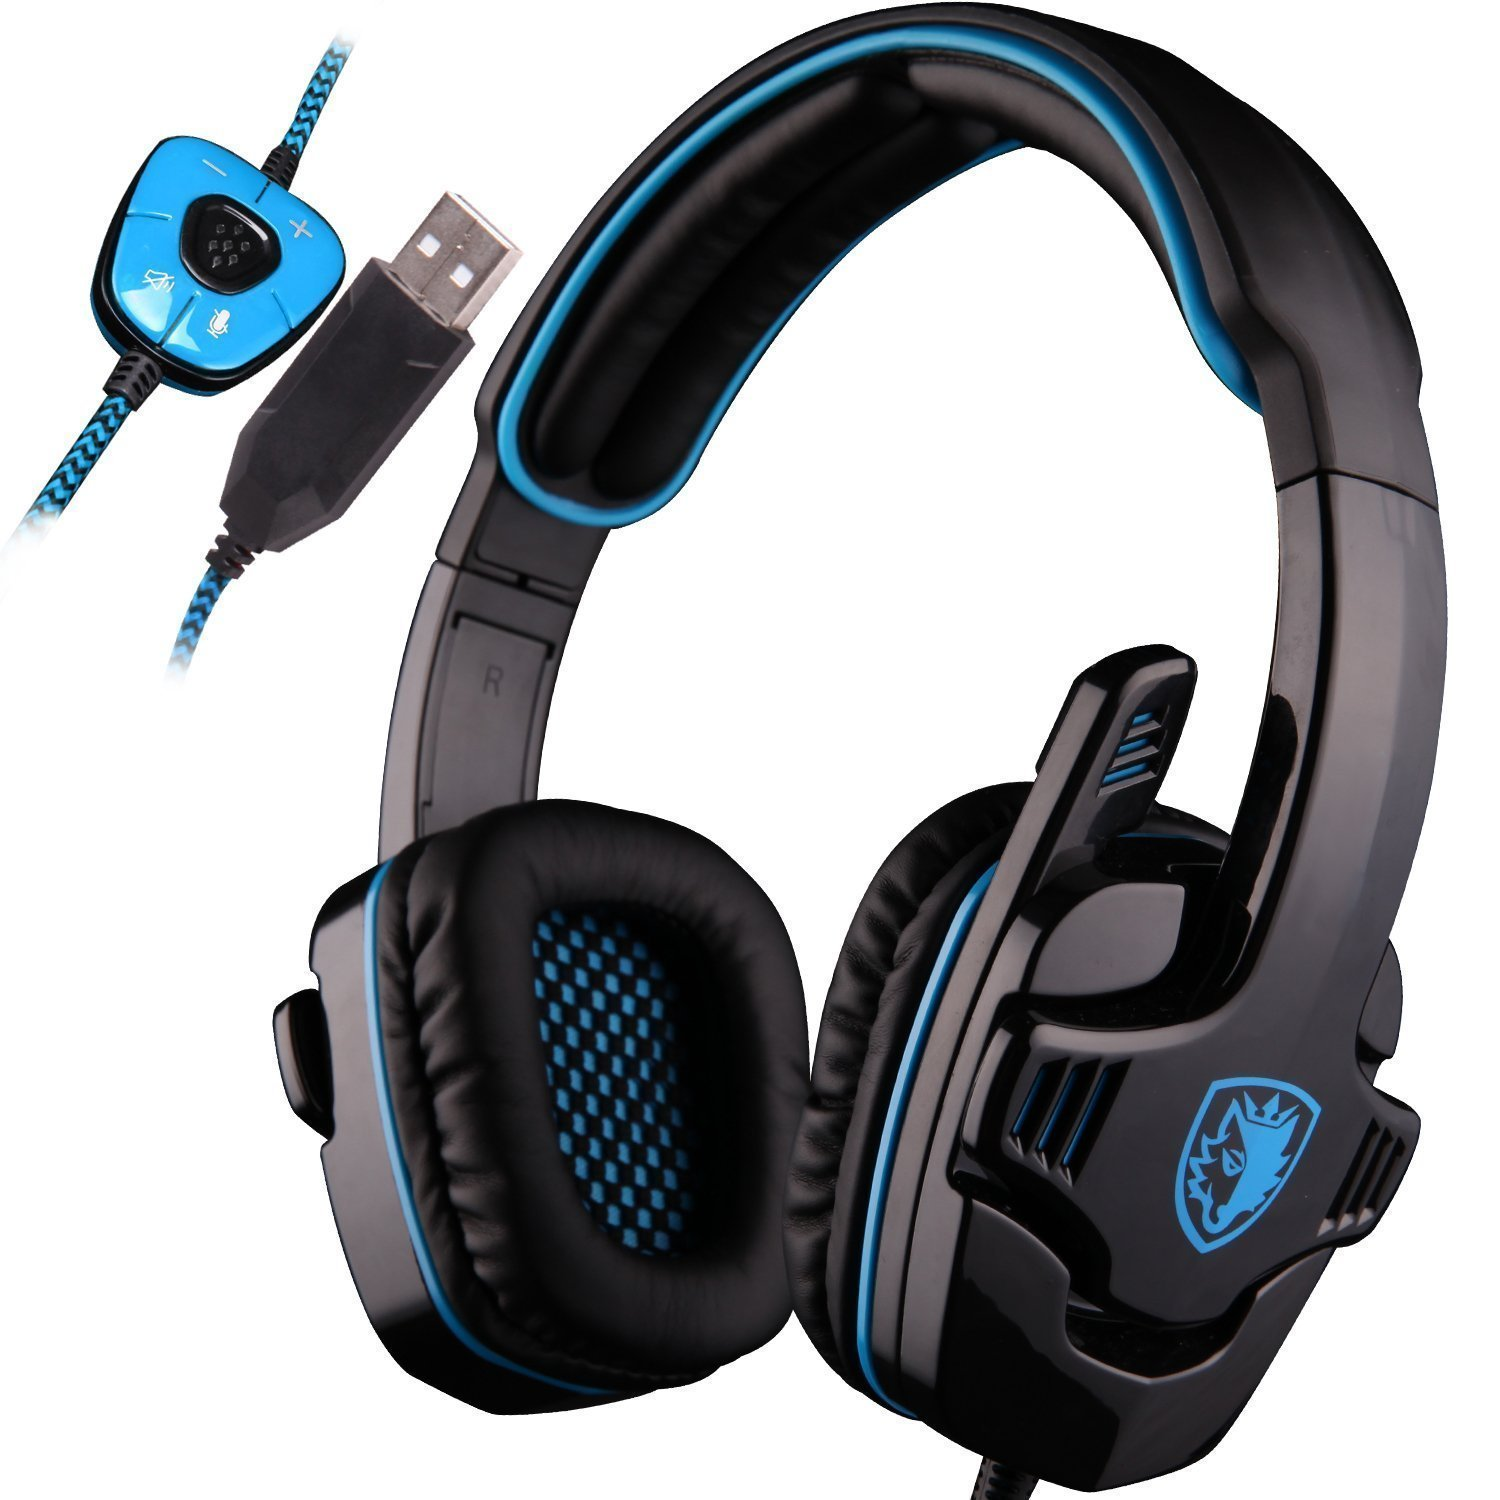 Auriculares Gamer : SADES SA901 Over Ear USB Wired 7.1 Surro